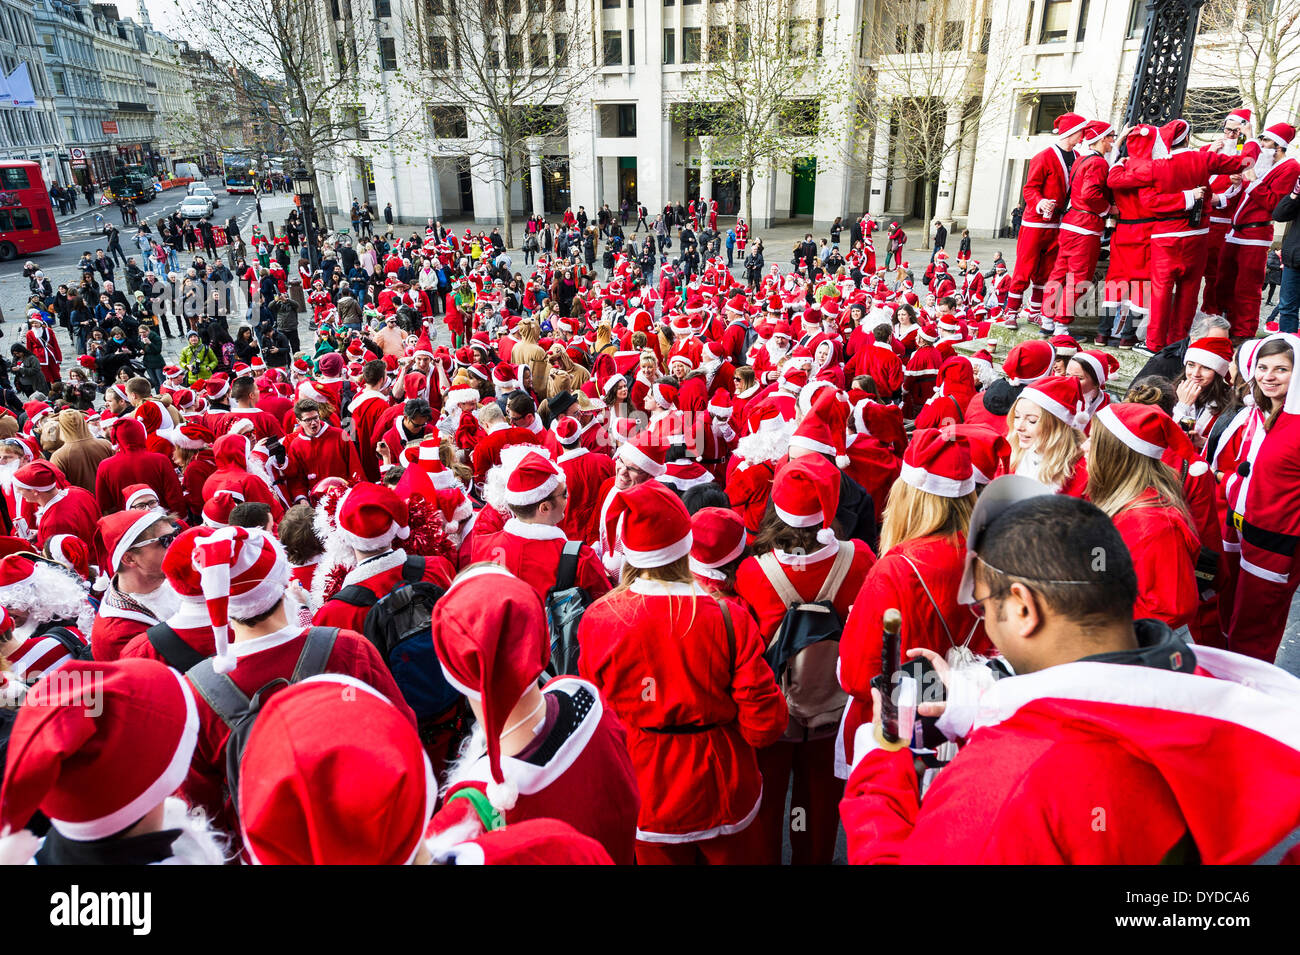 A mass gathering of Santas meeting on the steps of St Pauls Cathedral to celebrate the annual Santacon. - Stock Image